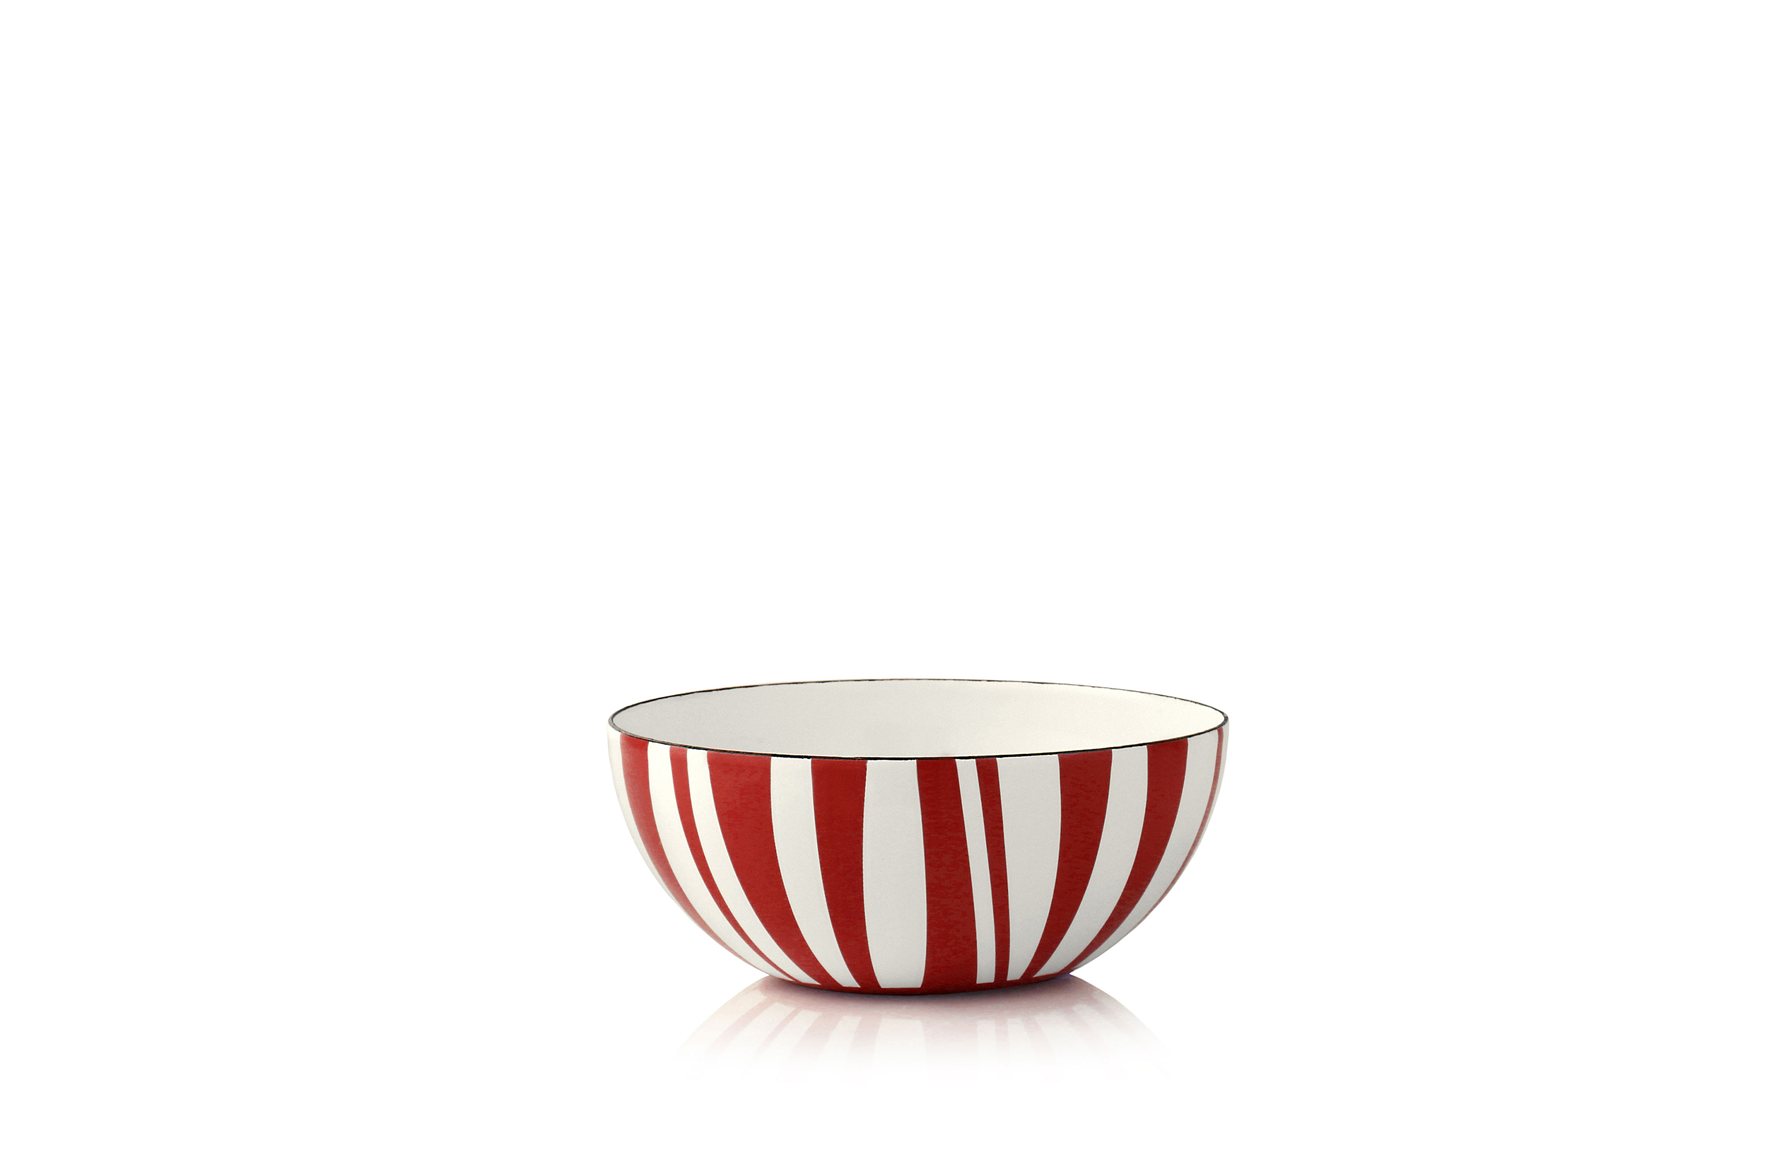 10 cm - Stripes collectionRed